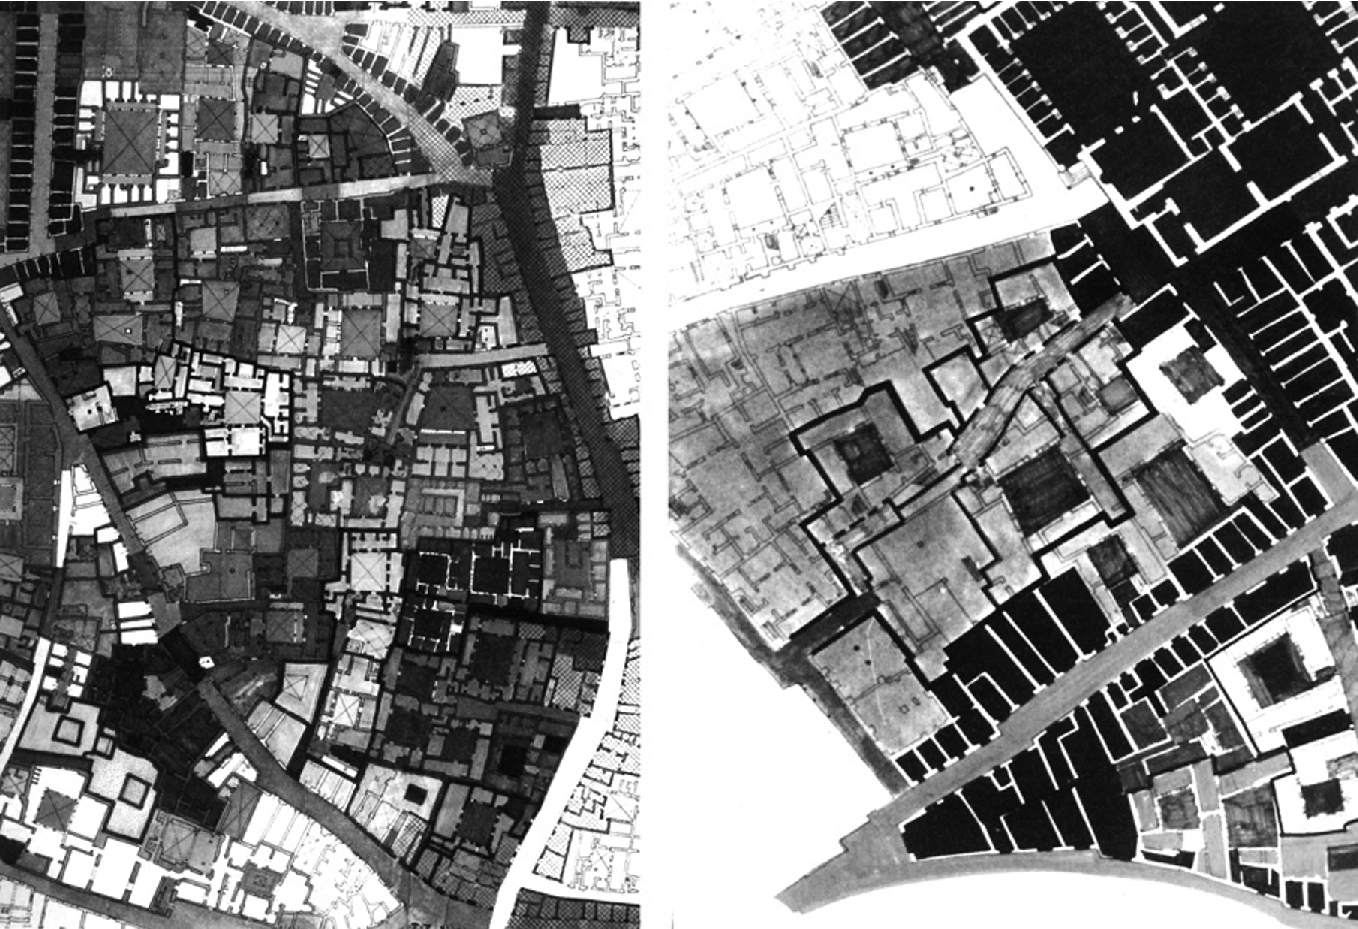 Studi Di Architettura Cuneo tools for reading and designing the 'islamic city'. italian